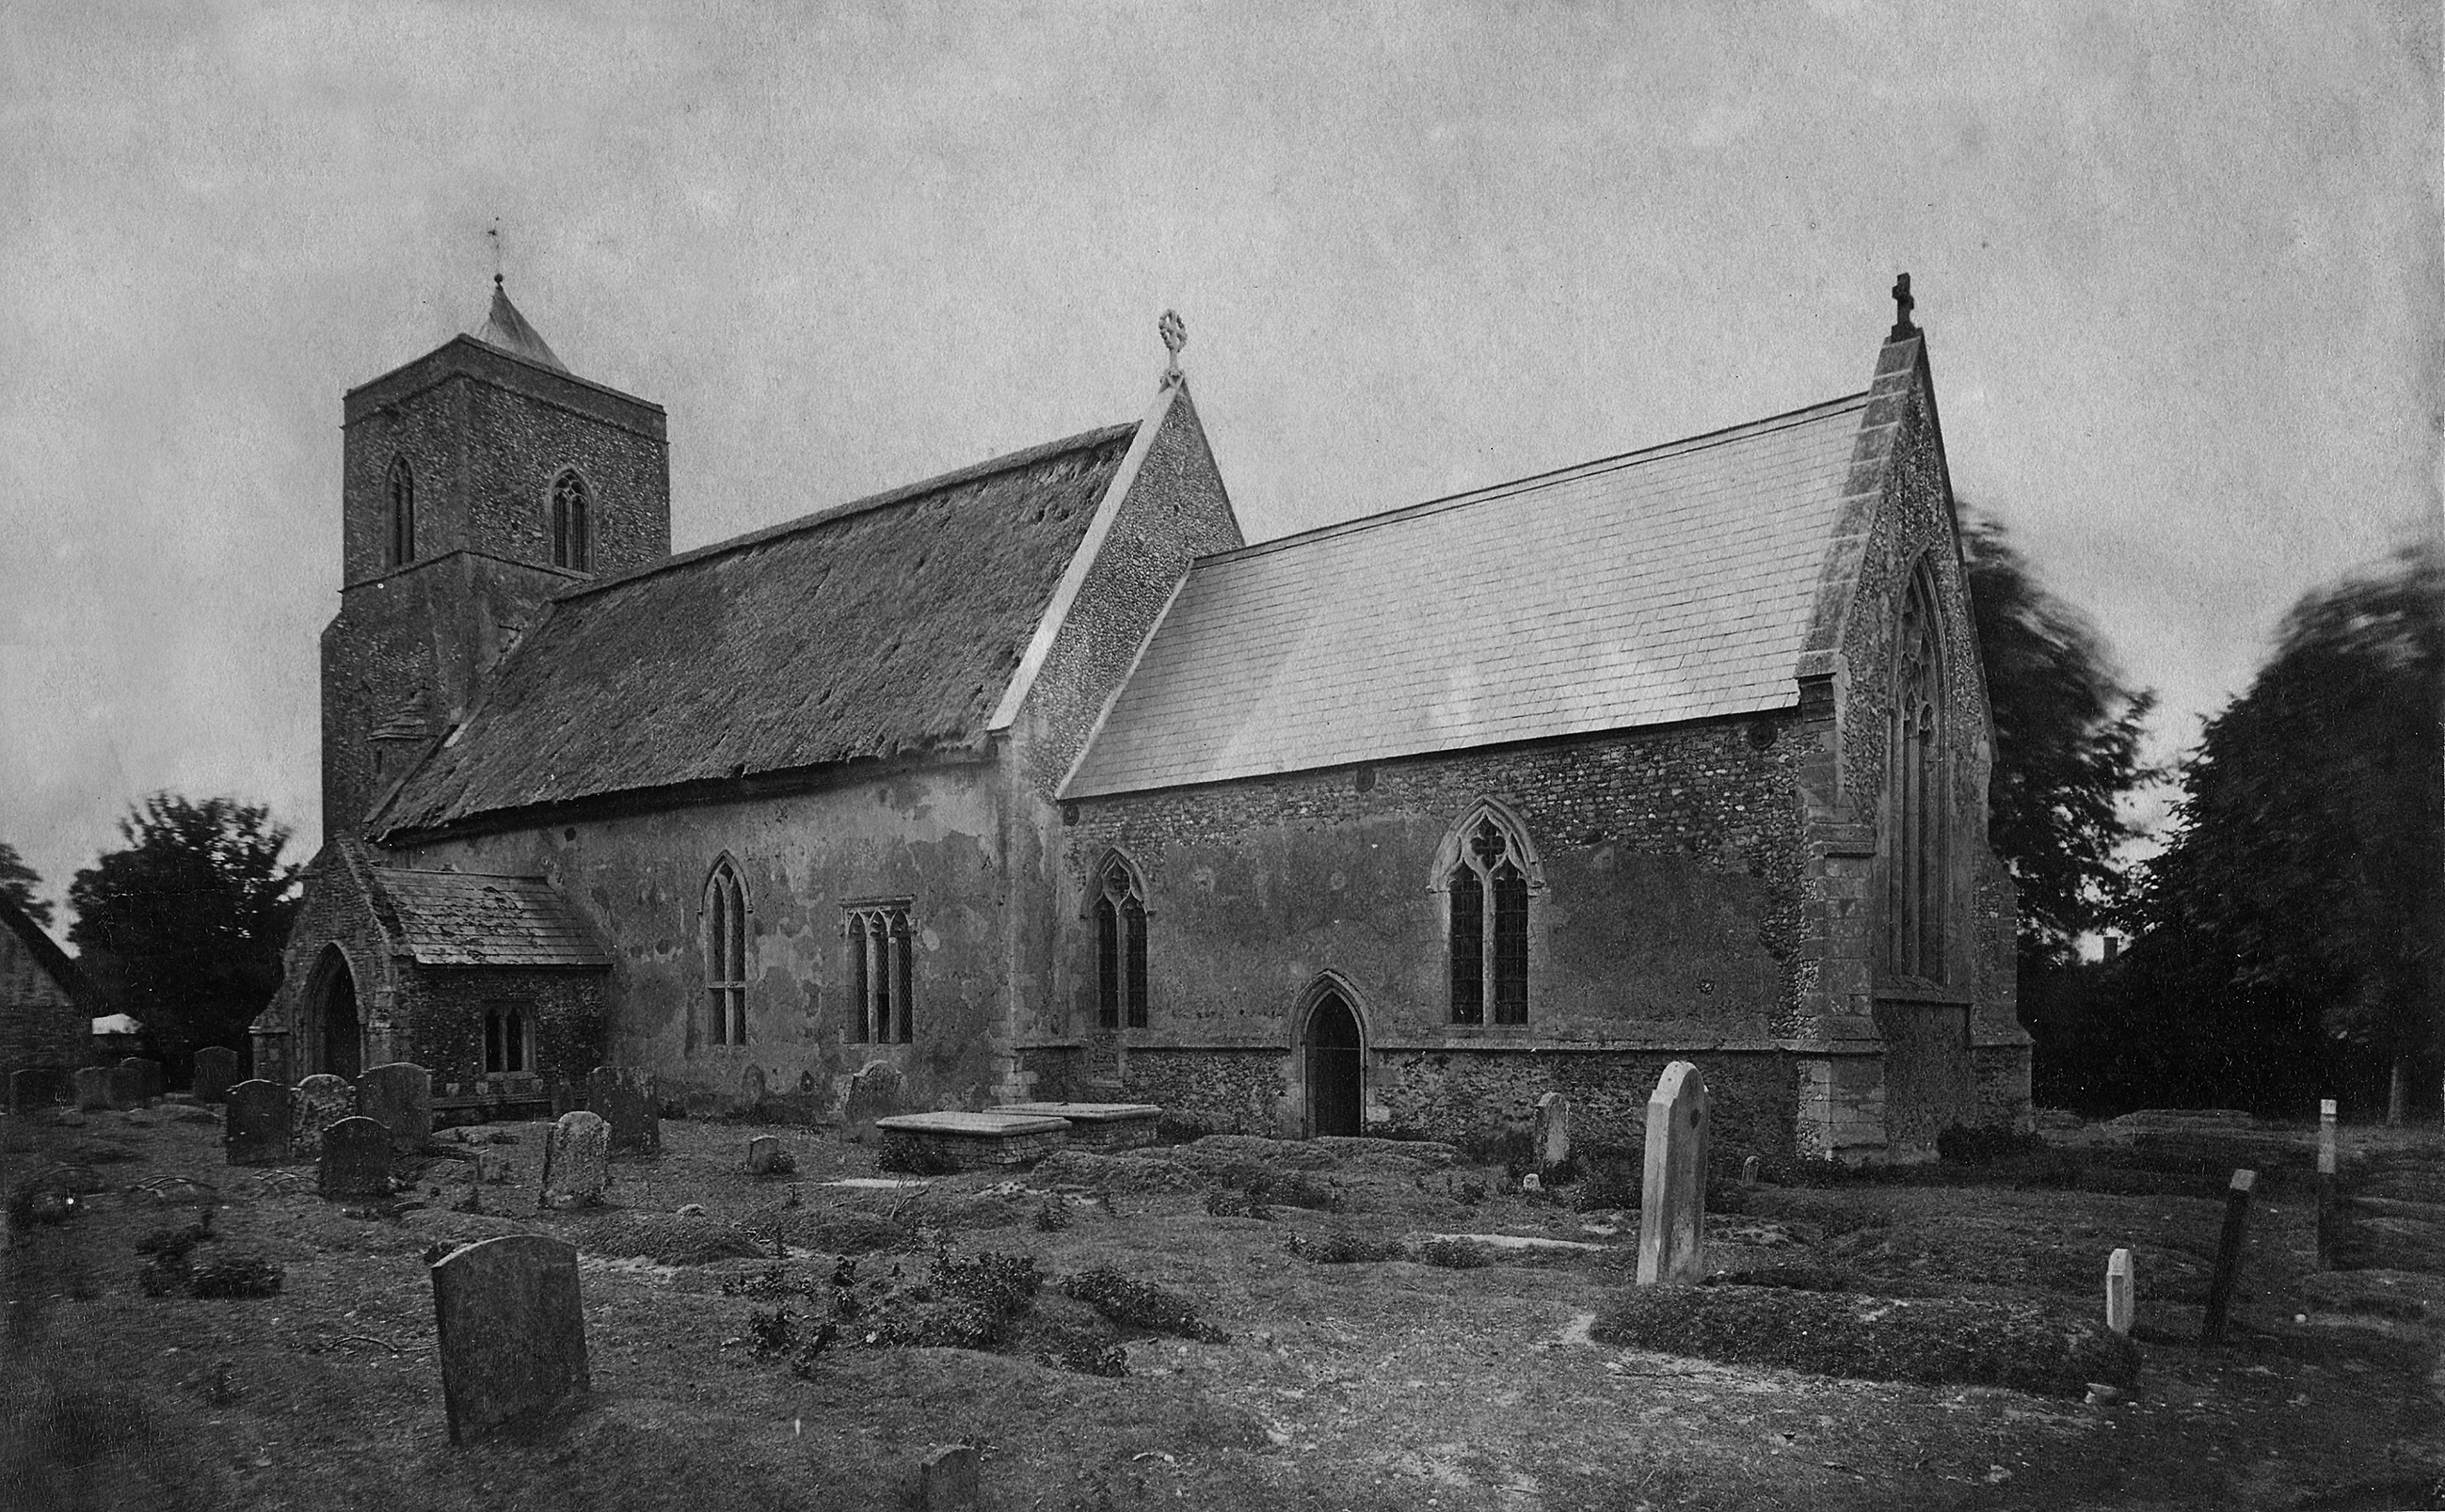 Photograph of St. Andrews' Church taken in the 1800s, showing the thatched roof.